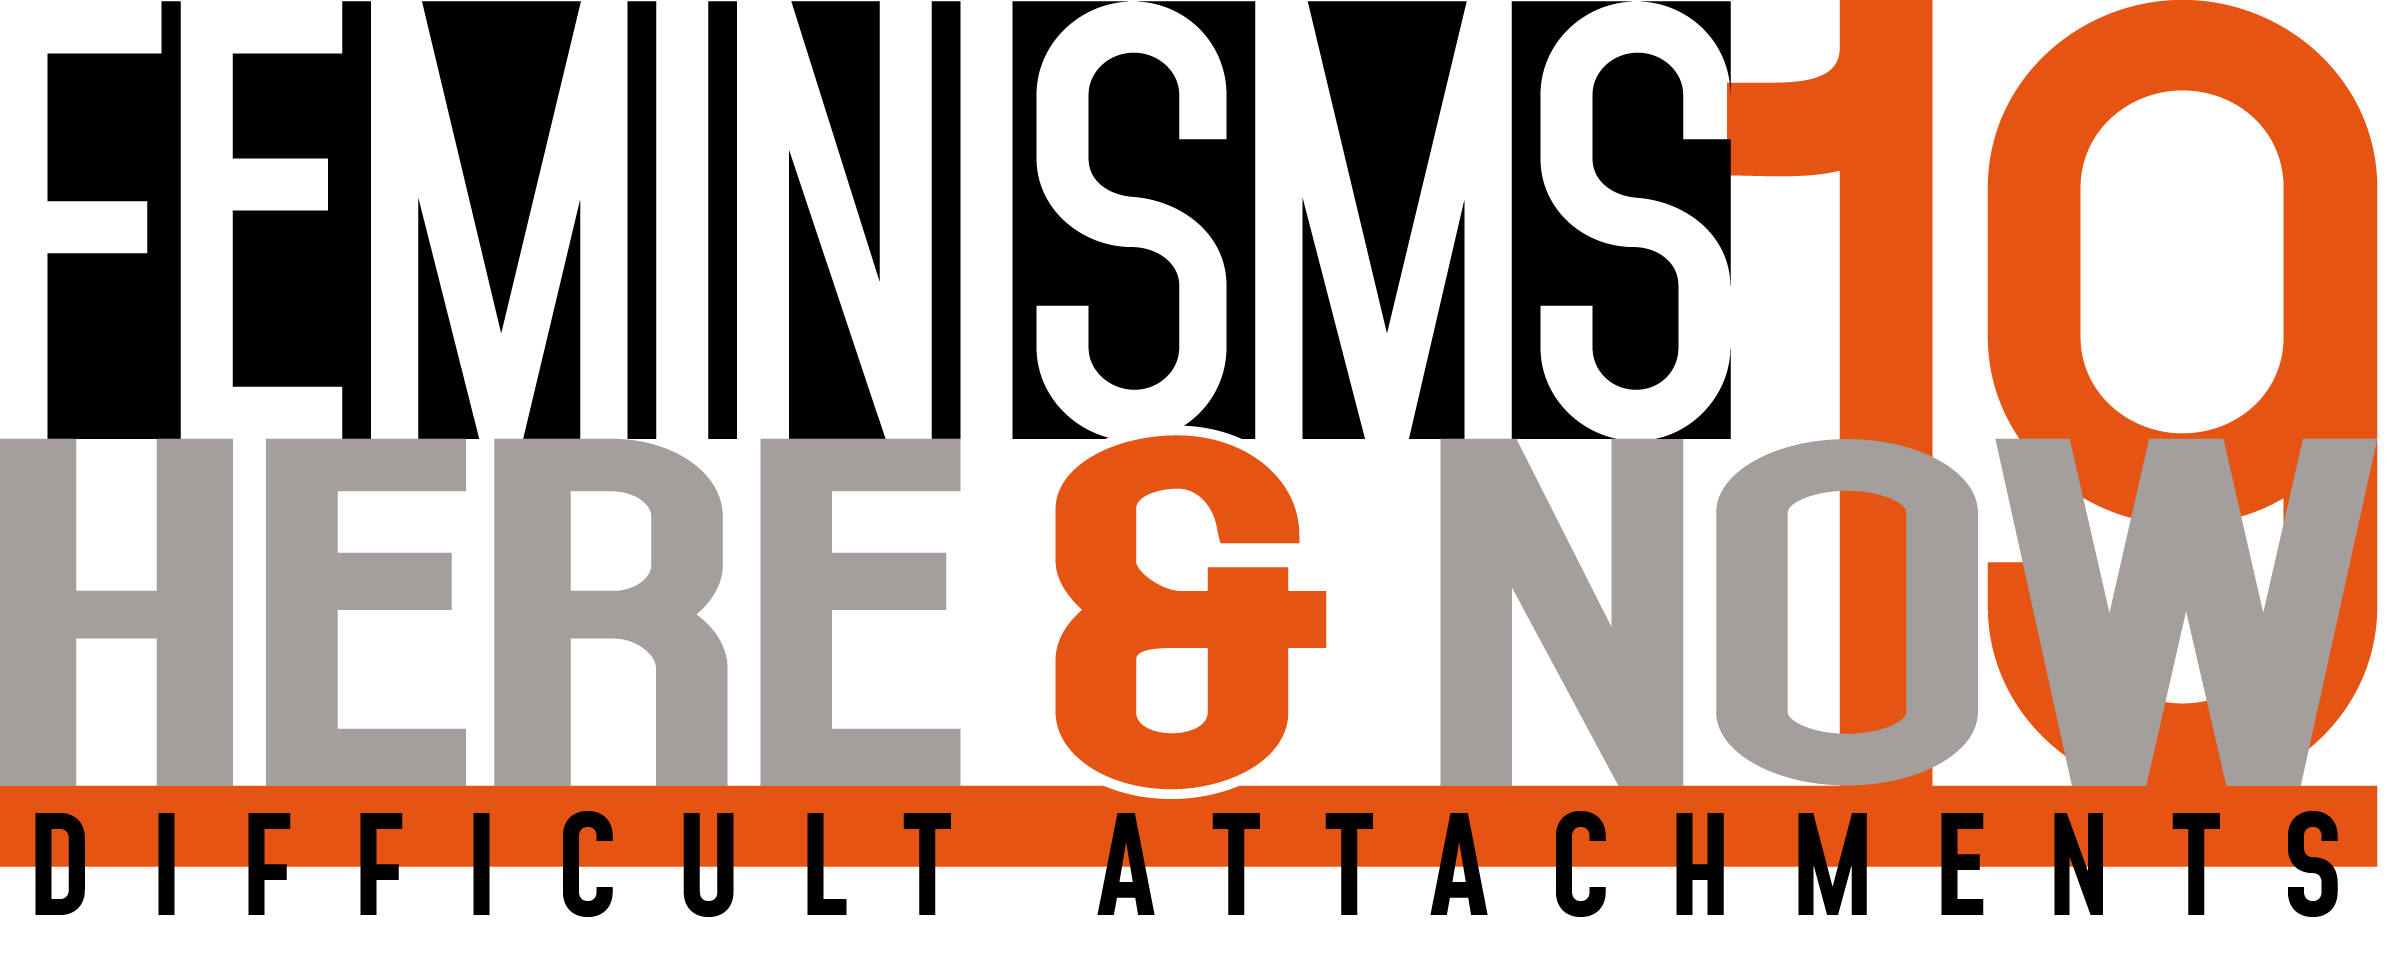 Feminisms Here & Now Conference